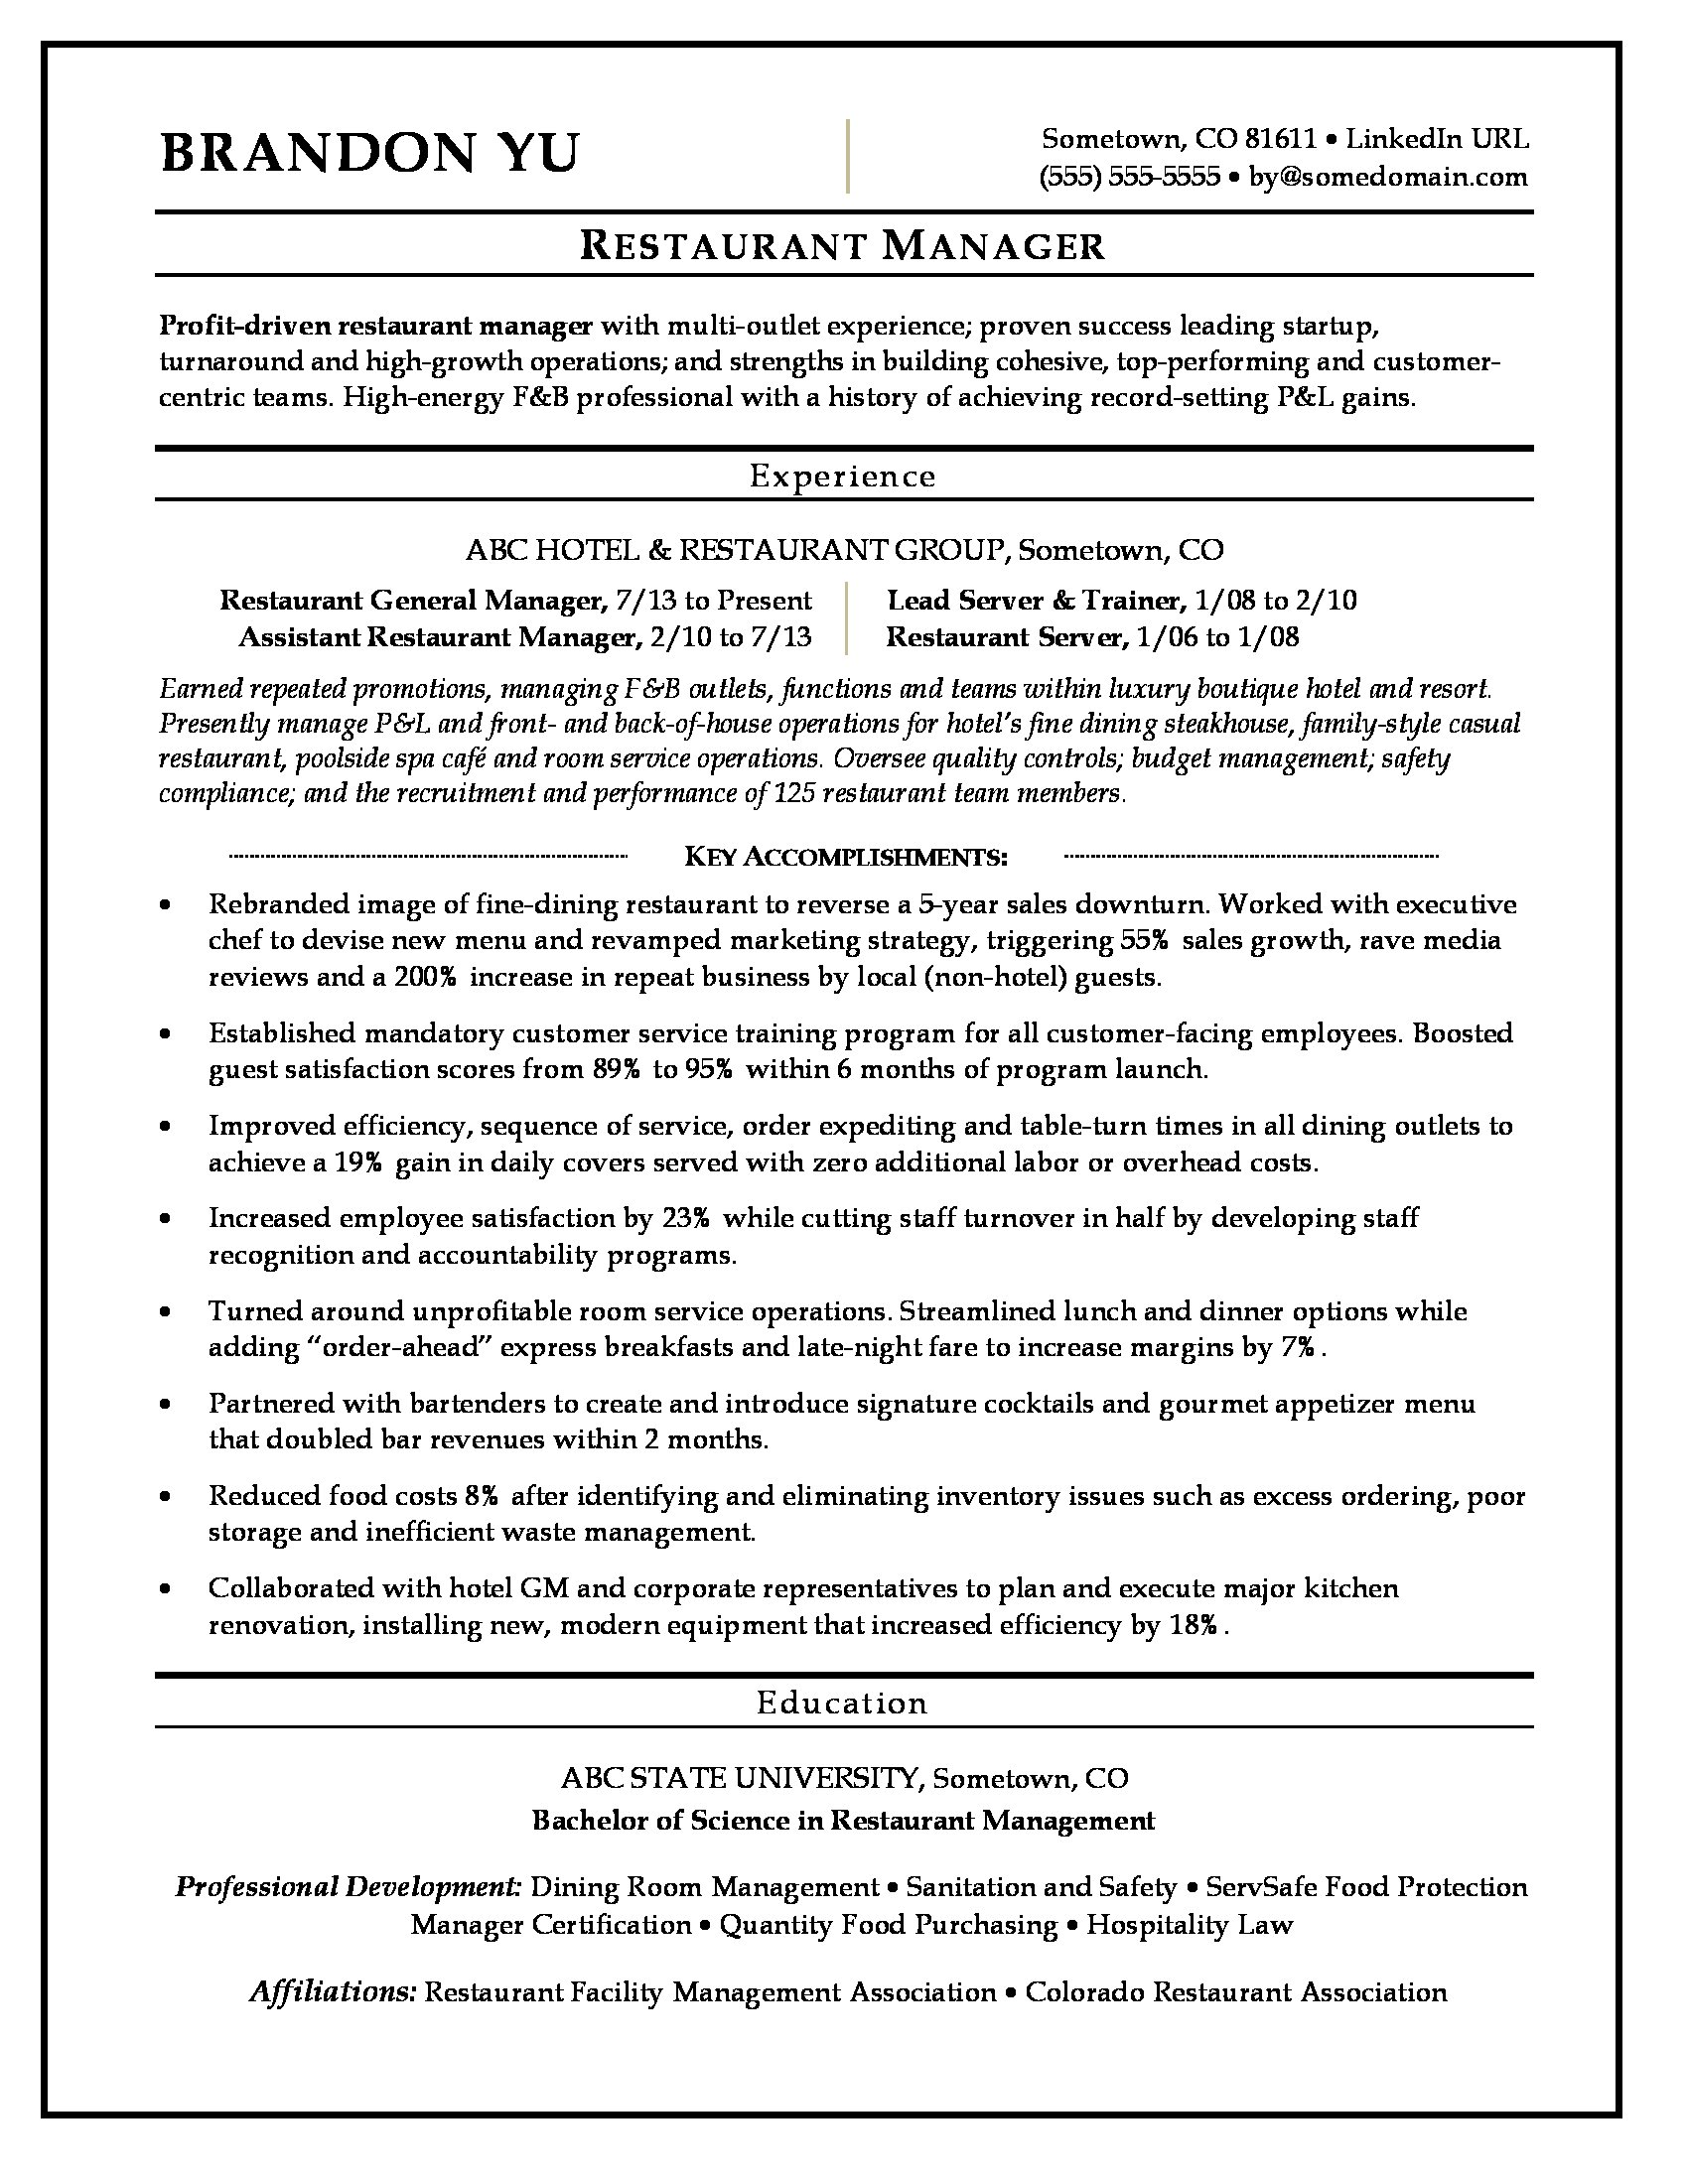 restaurant manager resume sample monster achievements examples mit mba consulting Resume Resume Achievements Examples